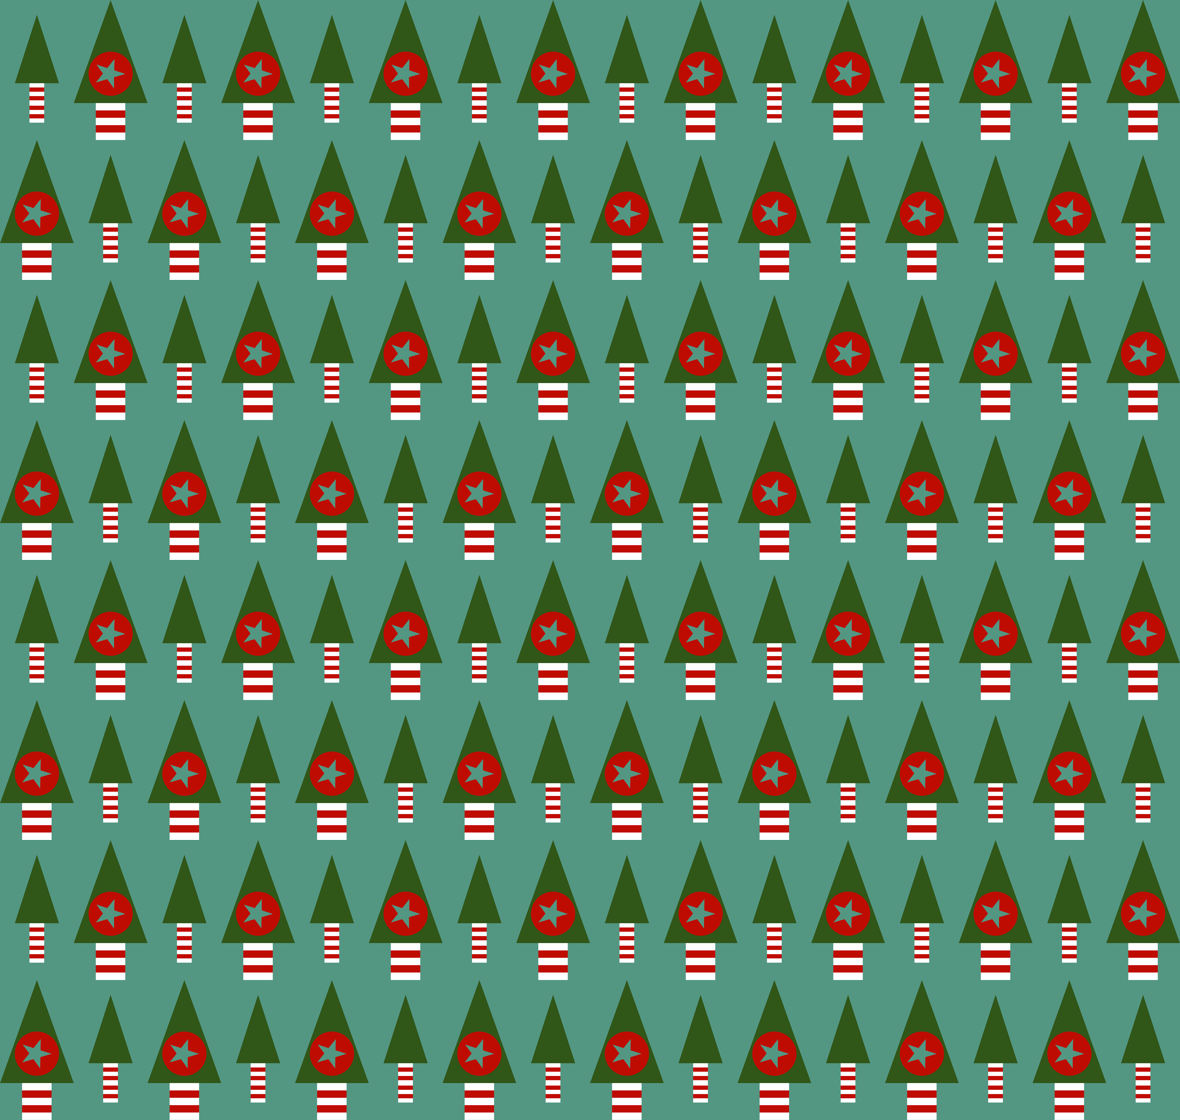 Retro Christmas Trees fabric by giddystuff on Spoonflower - custom fabric